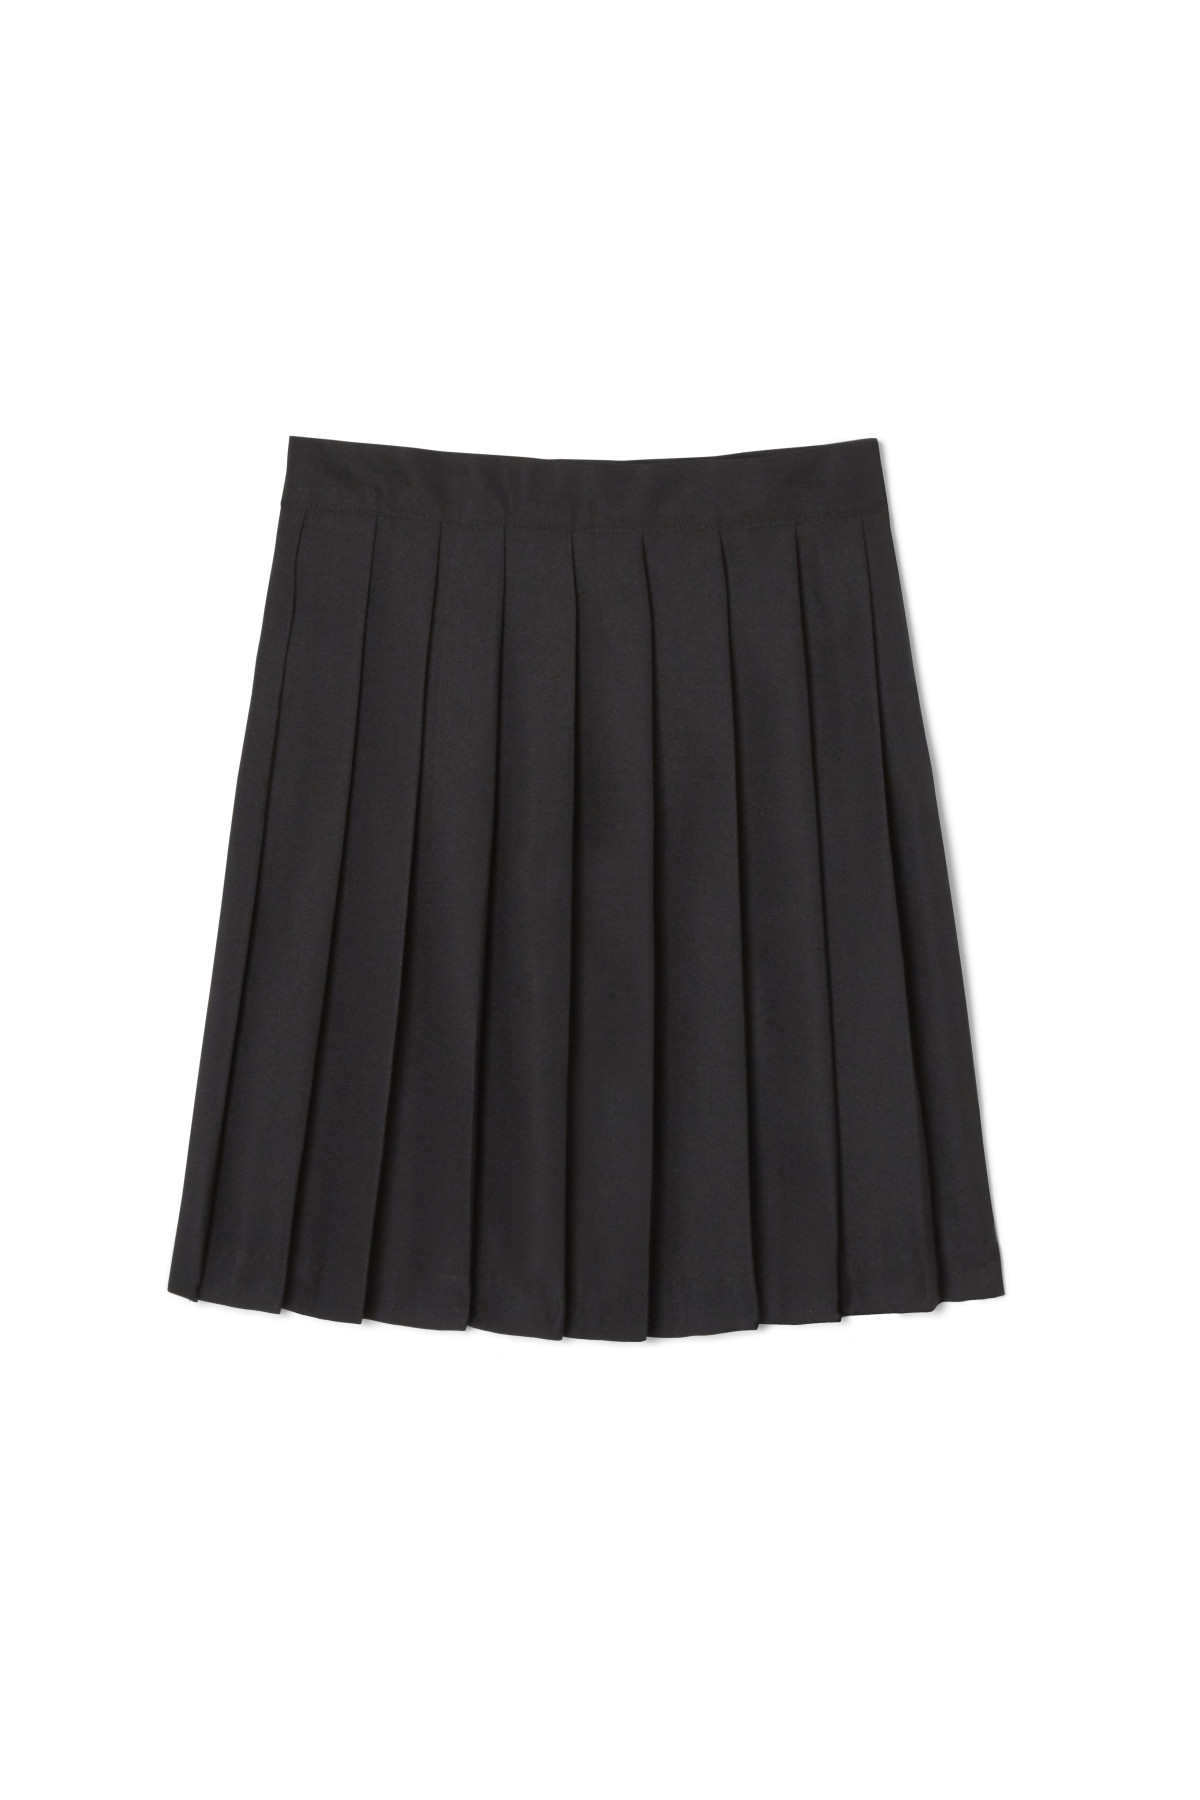 073404d948 Skirts & Scooters - Girls School Uniforms | French Toast - French Toast